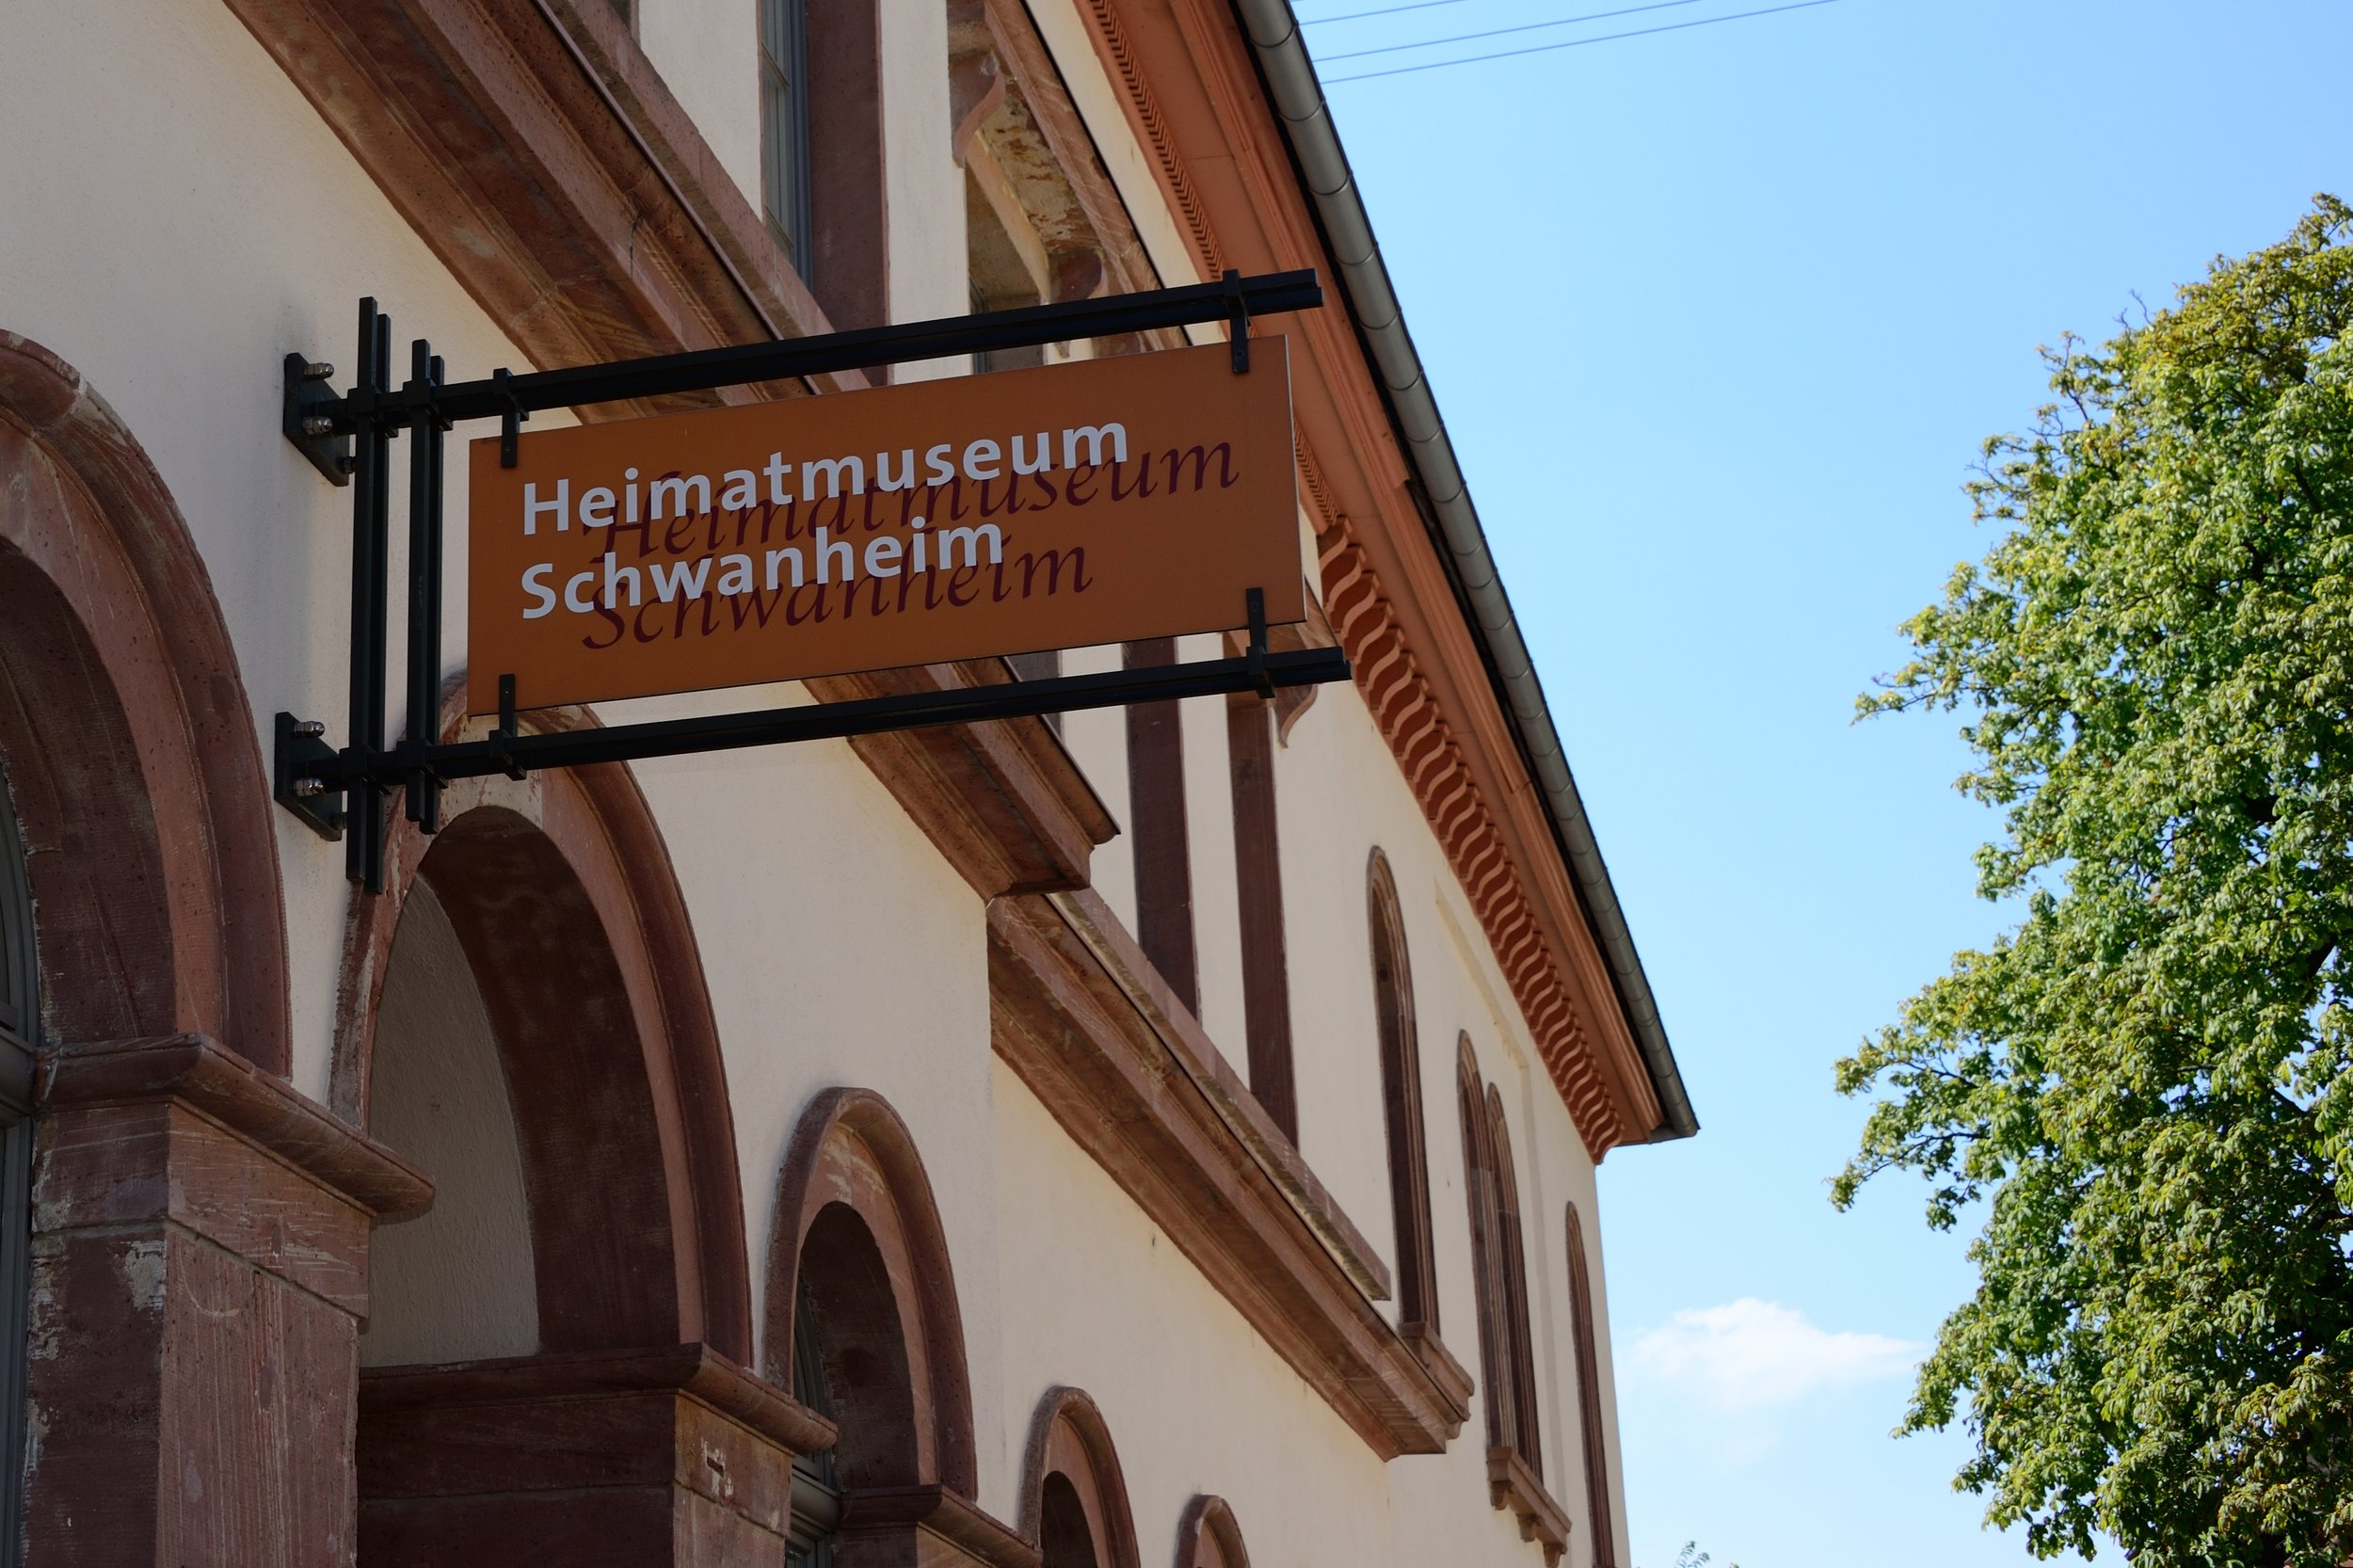 Entrance to the Heimatmuseum, Alt Schwanheim 6. (Photo copyright © 2016 by Anne Noble)